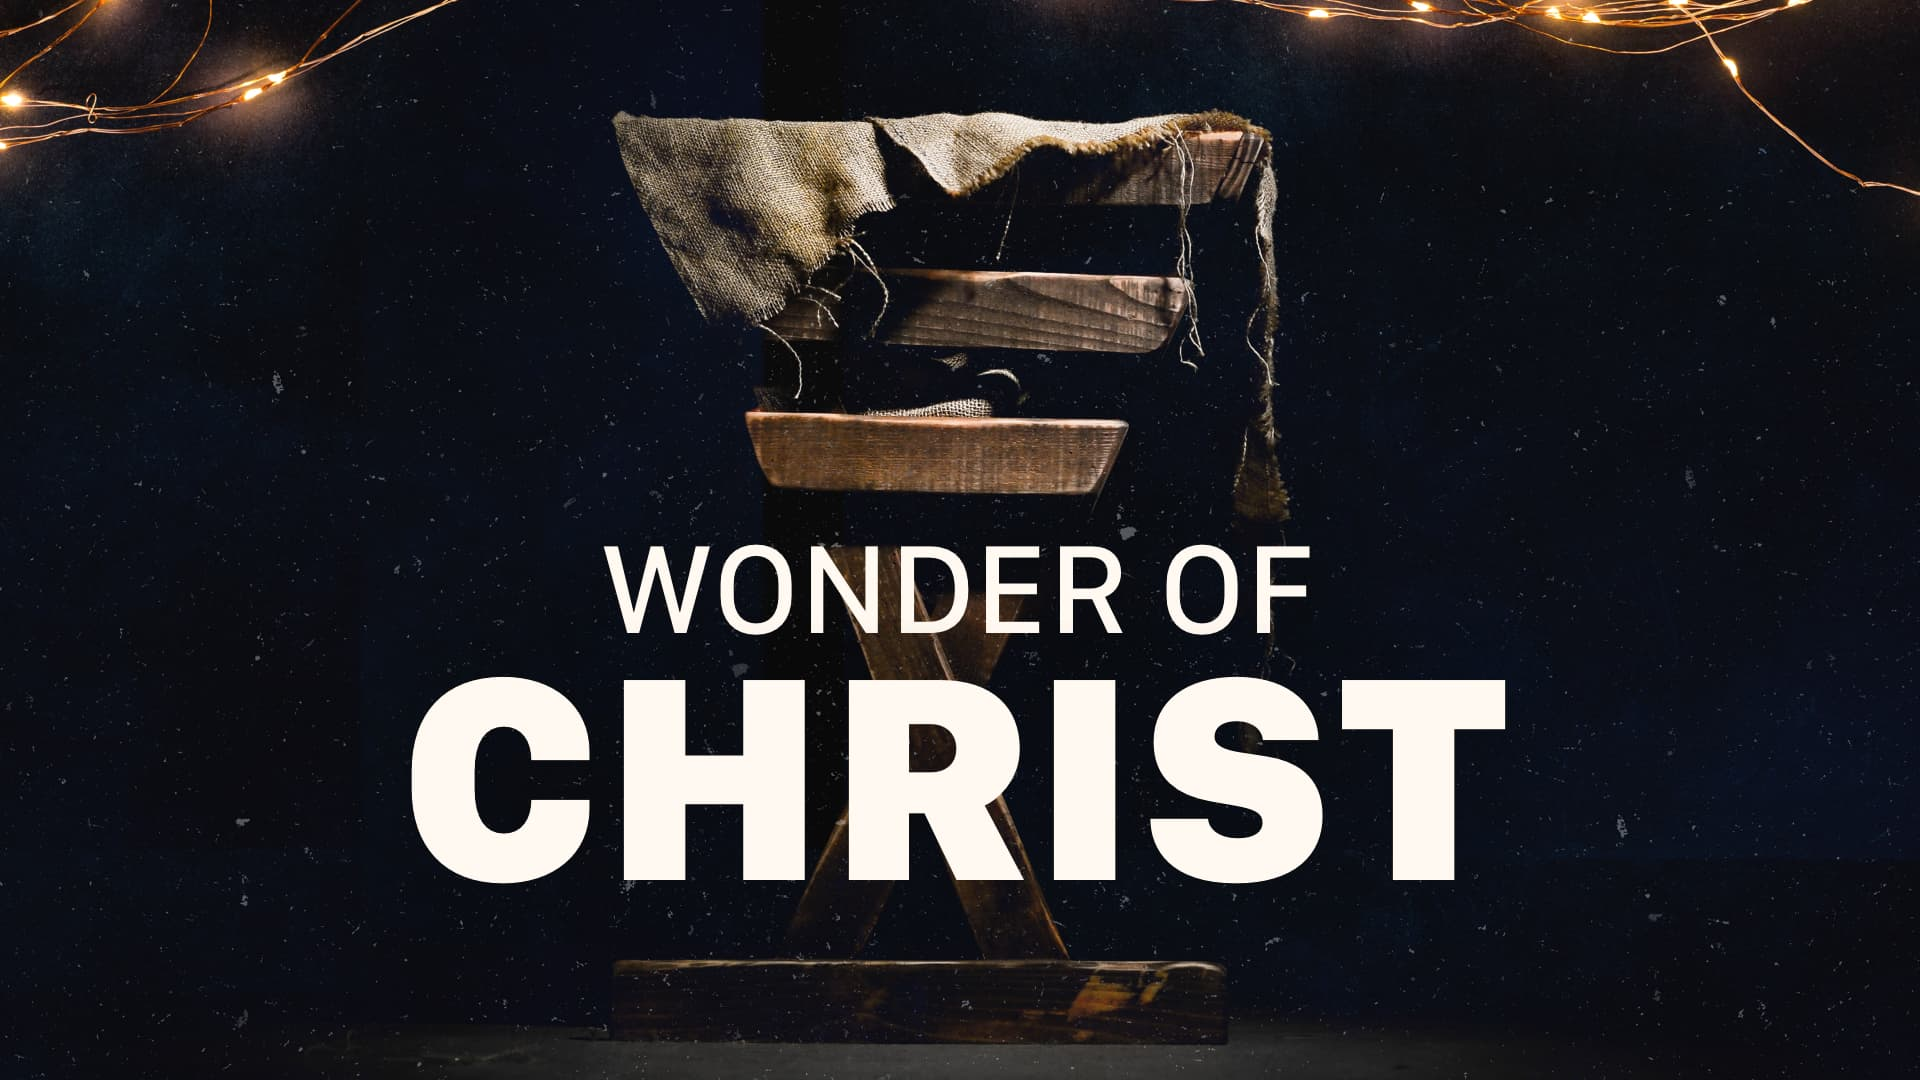 Wonder of Christ